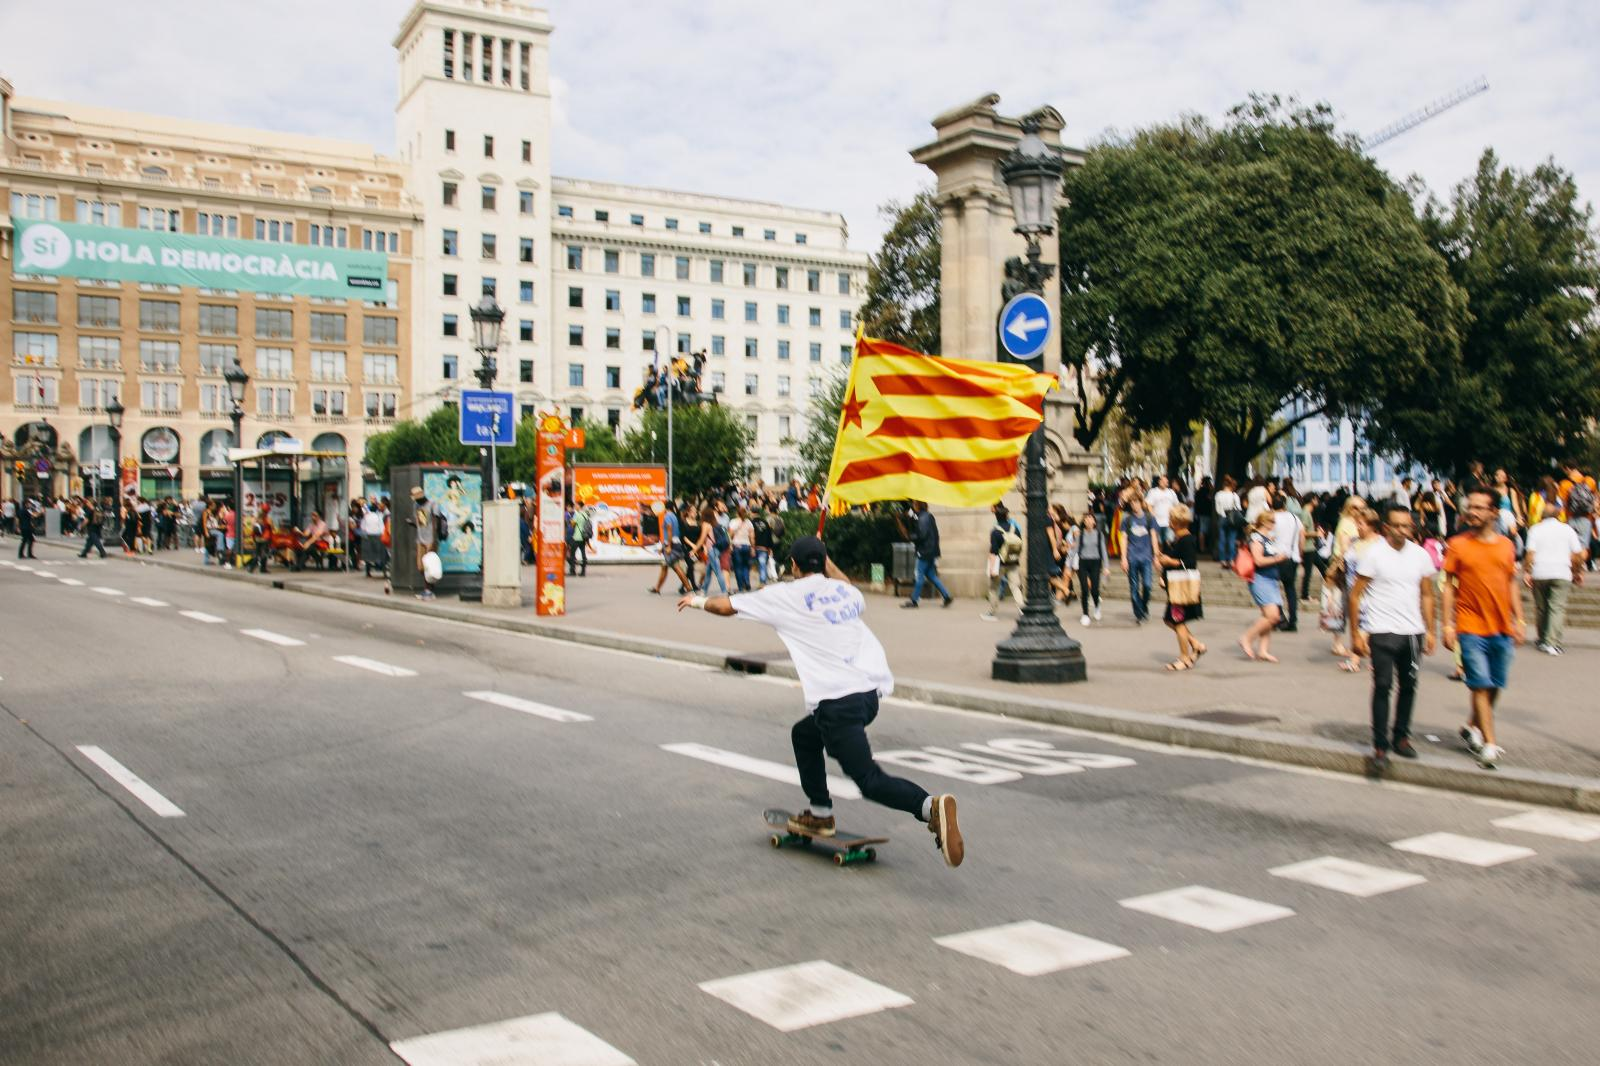 A skater blasts around Barcelona with a Catalan flag. October 2nd, 2017